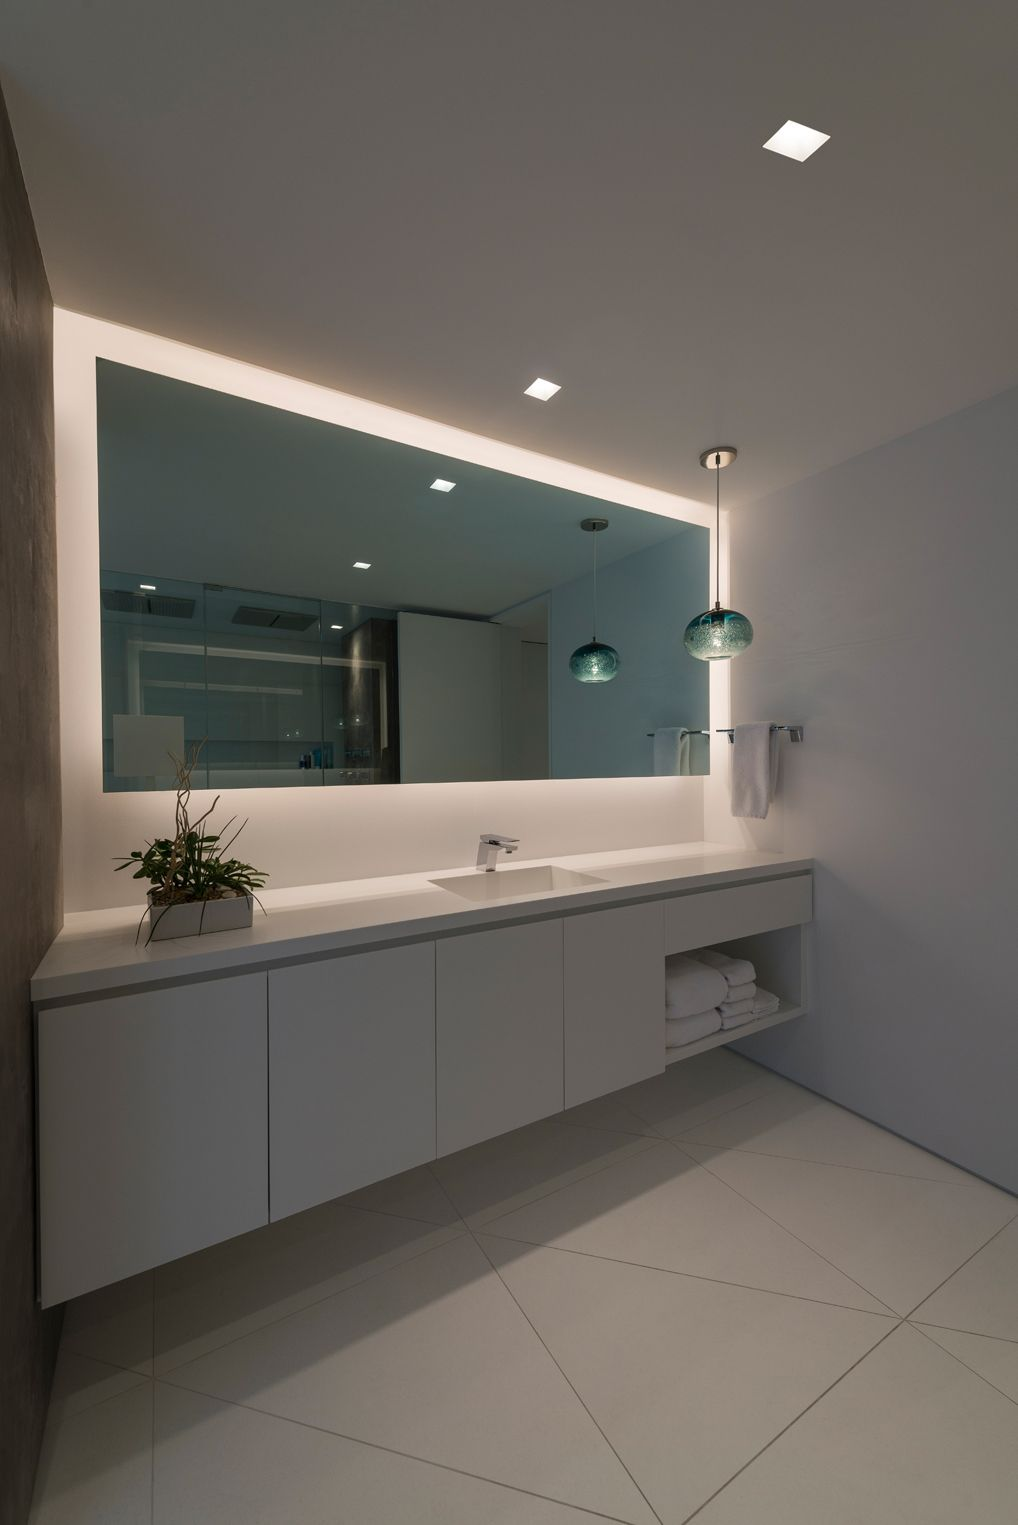 Bathroom Lighting Is Essential And Cannot Be Overlooked Why What Is The First Place You Go To Every Modern Bathroom Mirrors Stylish Bathroom Modern Bathroom